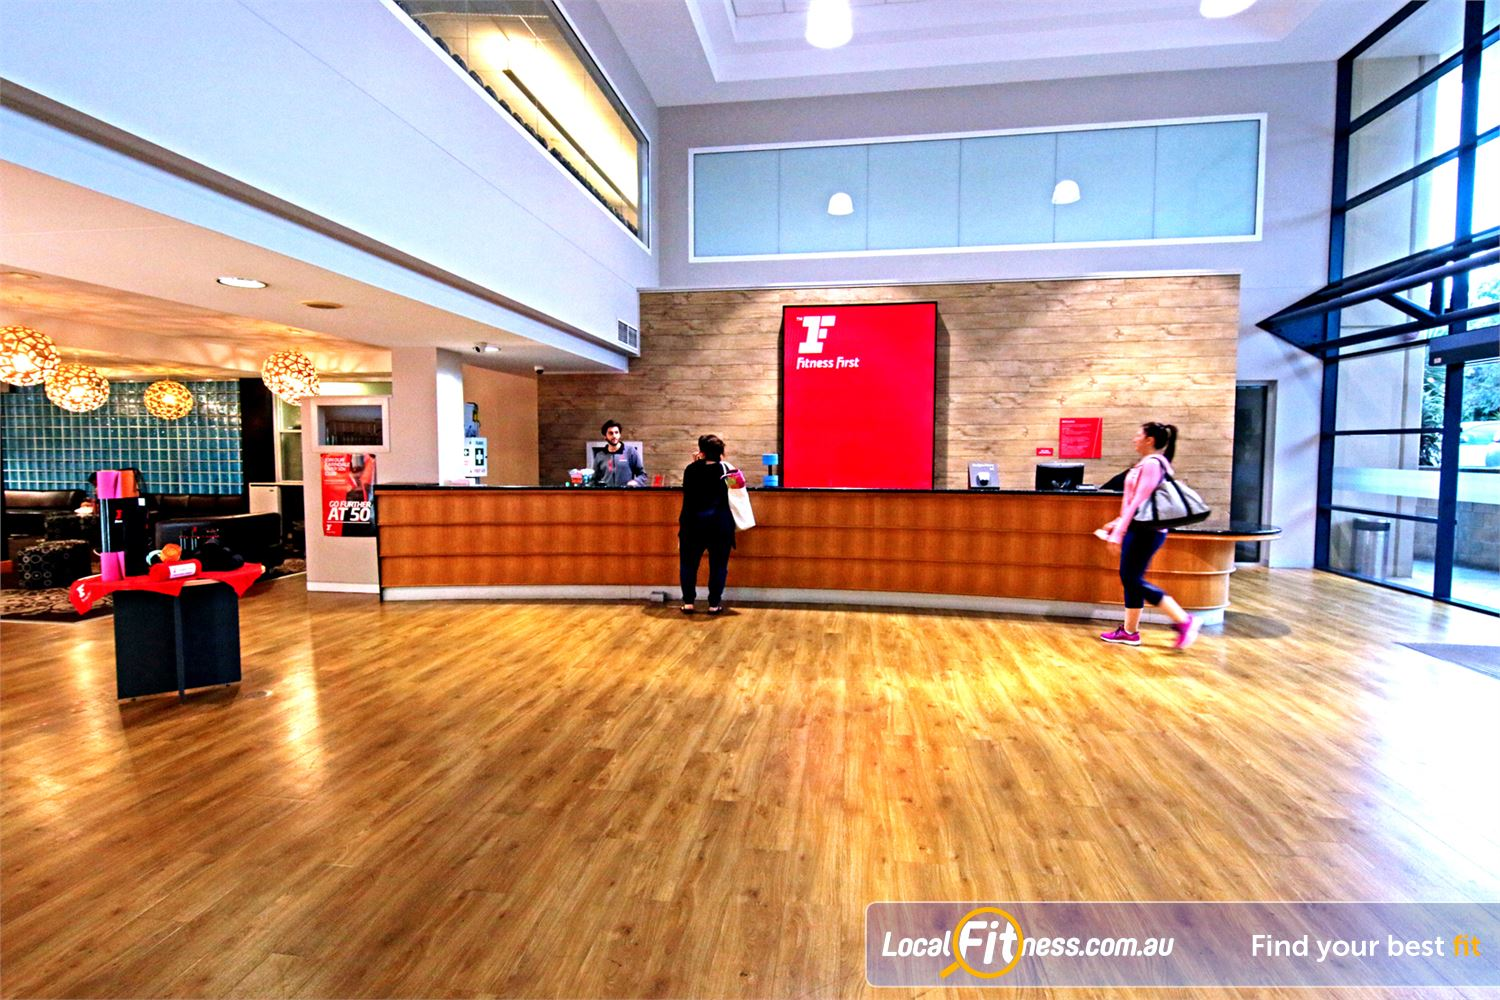 Fitness First Near Mackenzie Our Fitness First Carindale team are ready to welcome you.